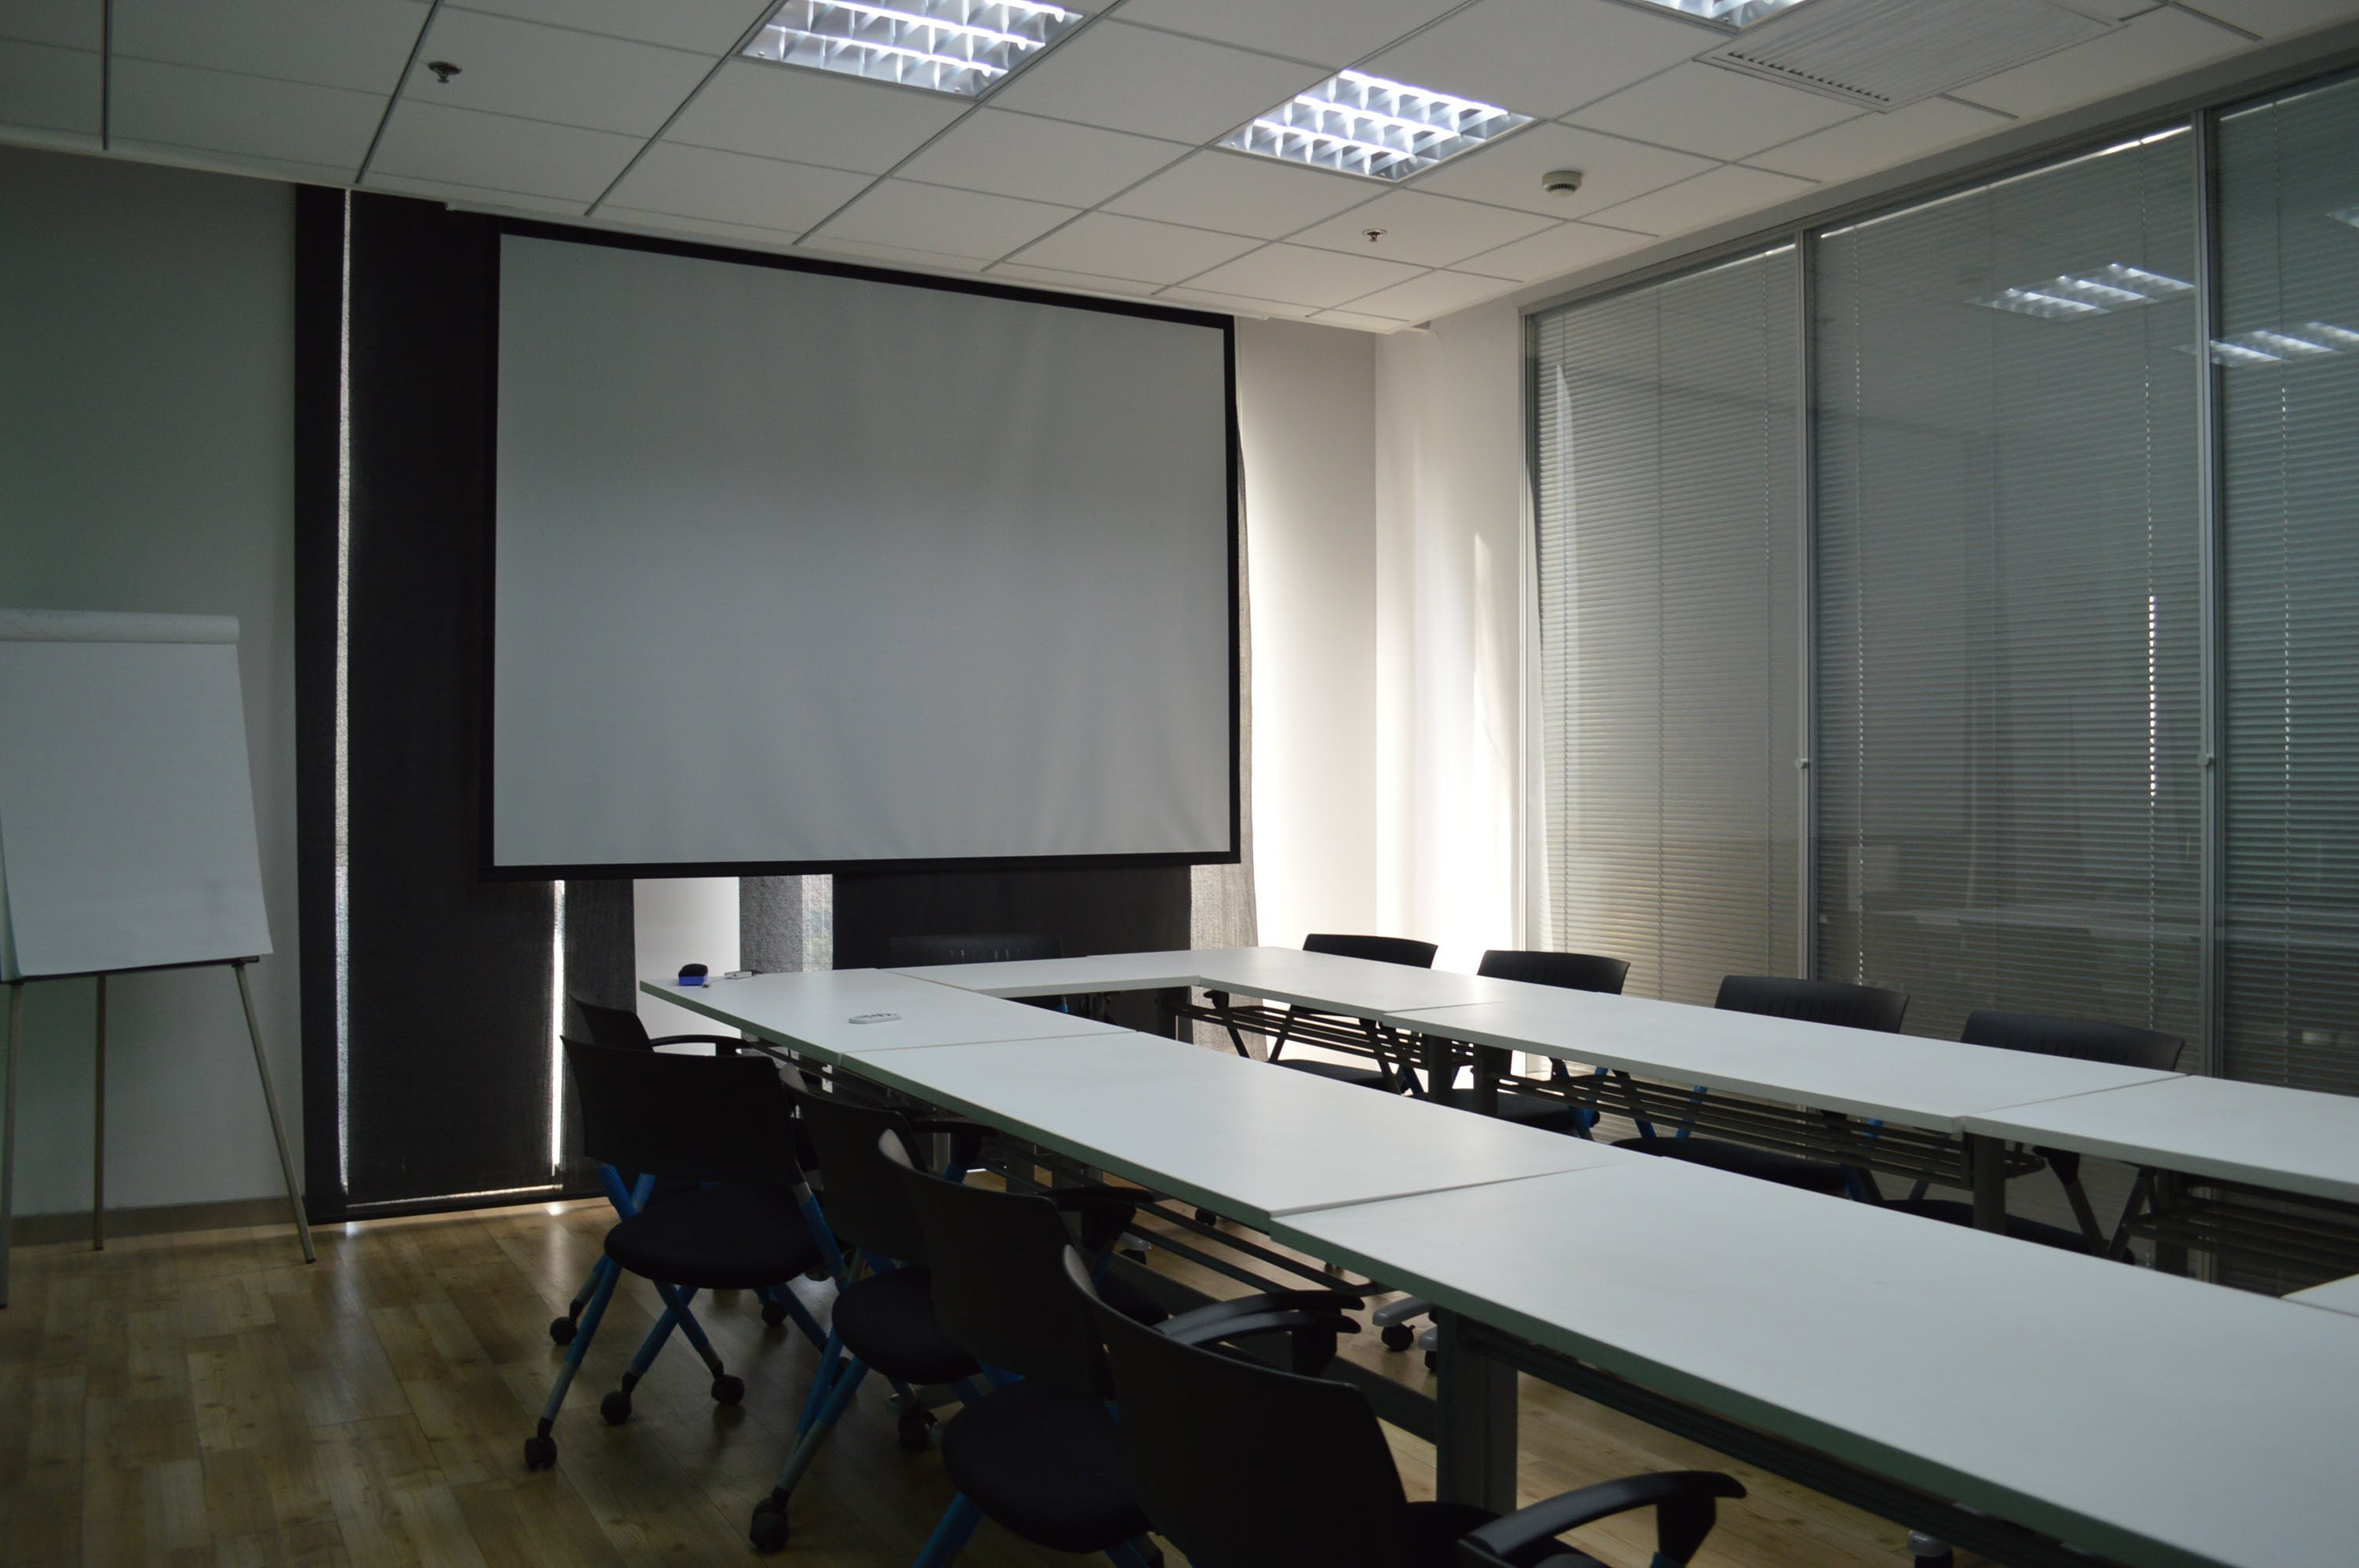 Free stock photo of train, classroom, conference room